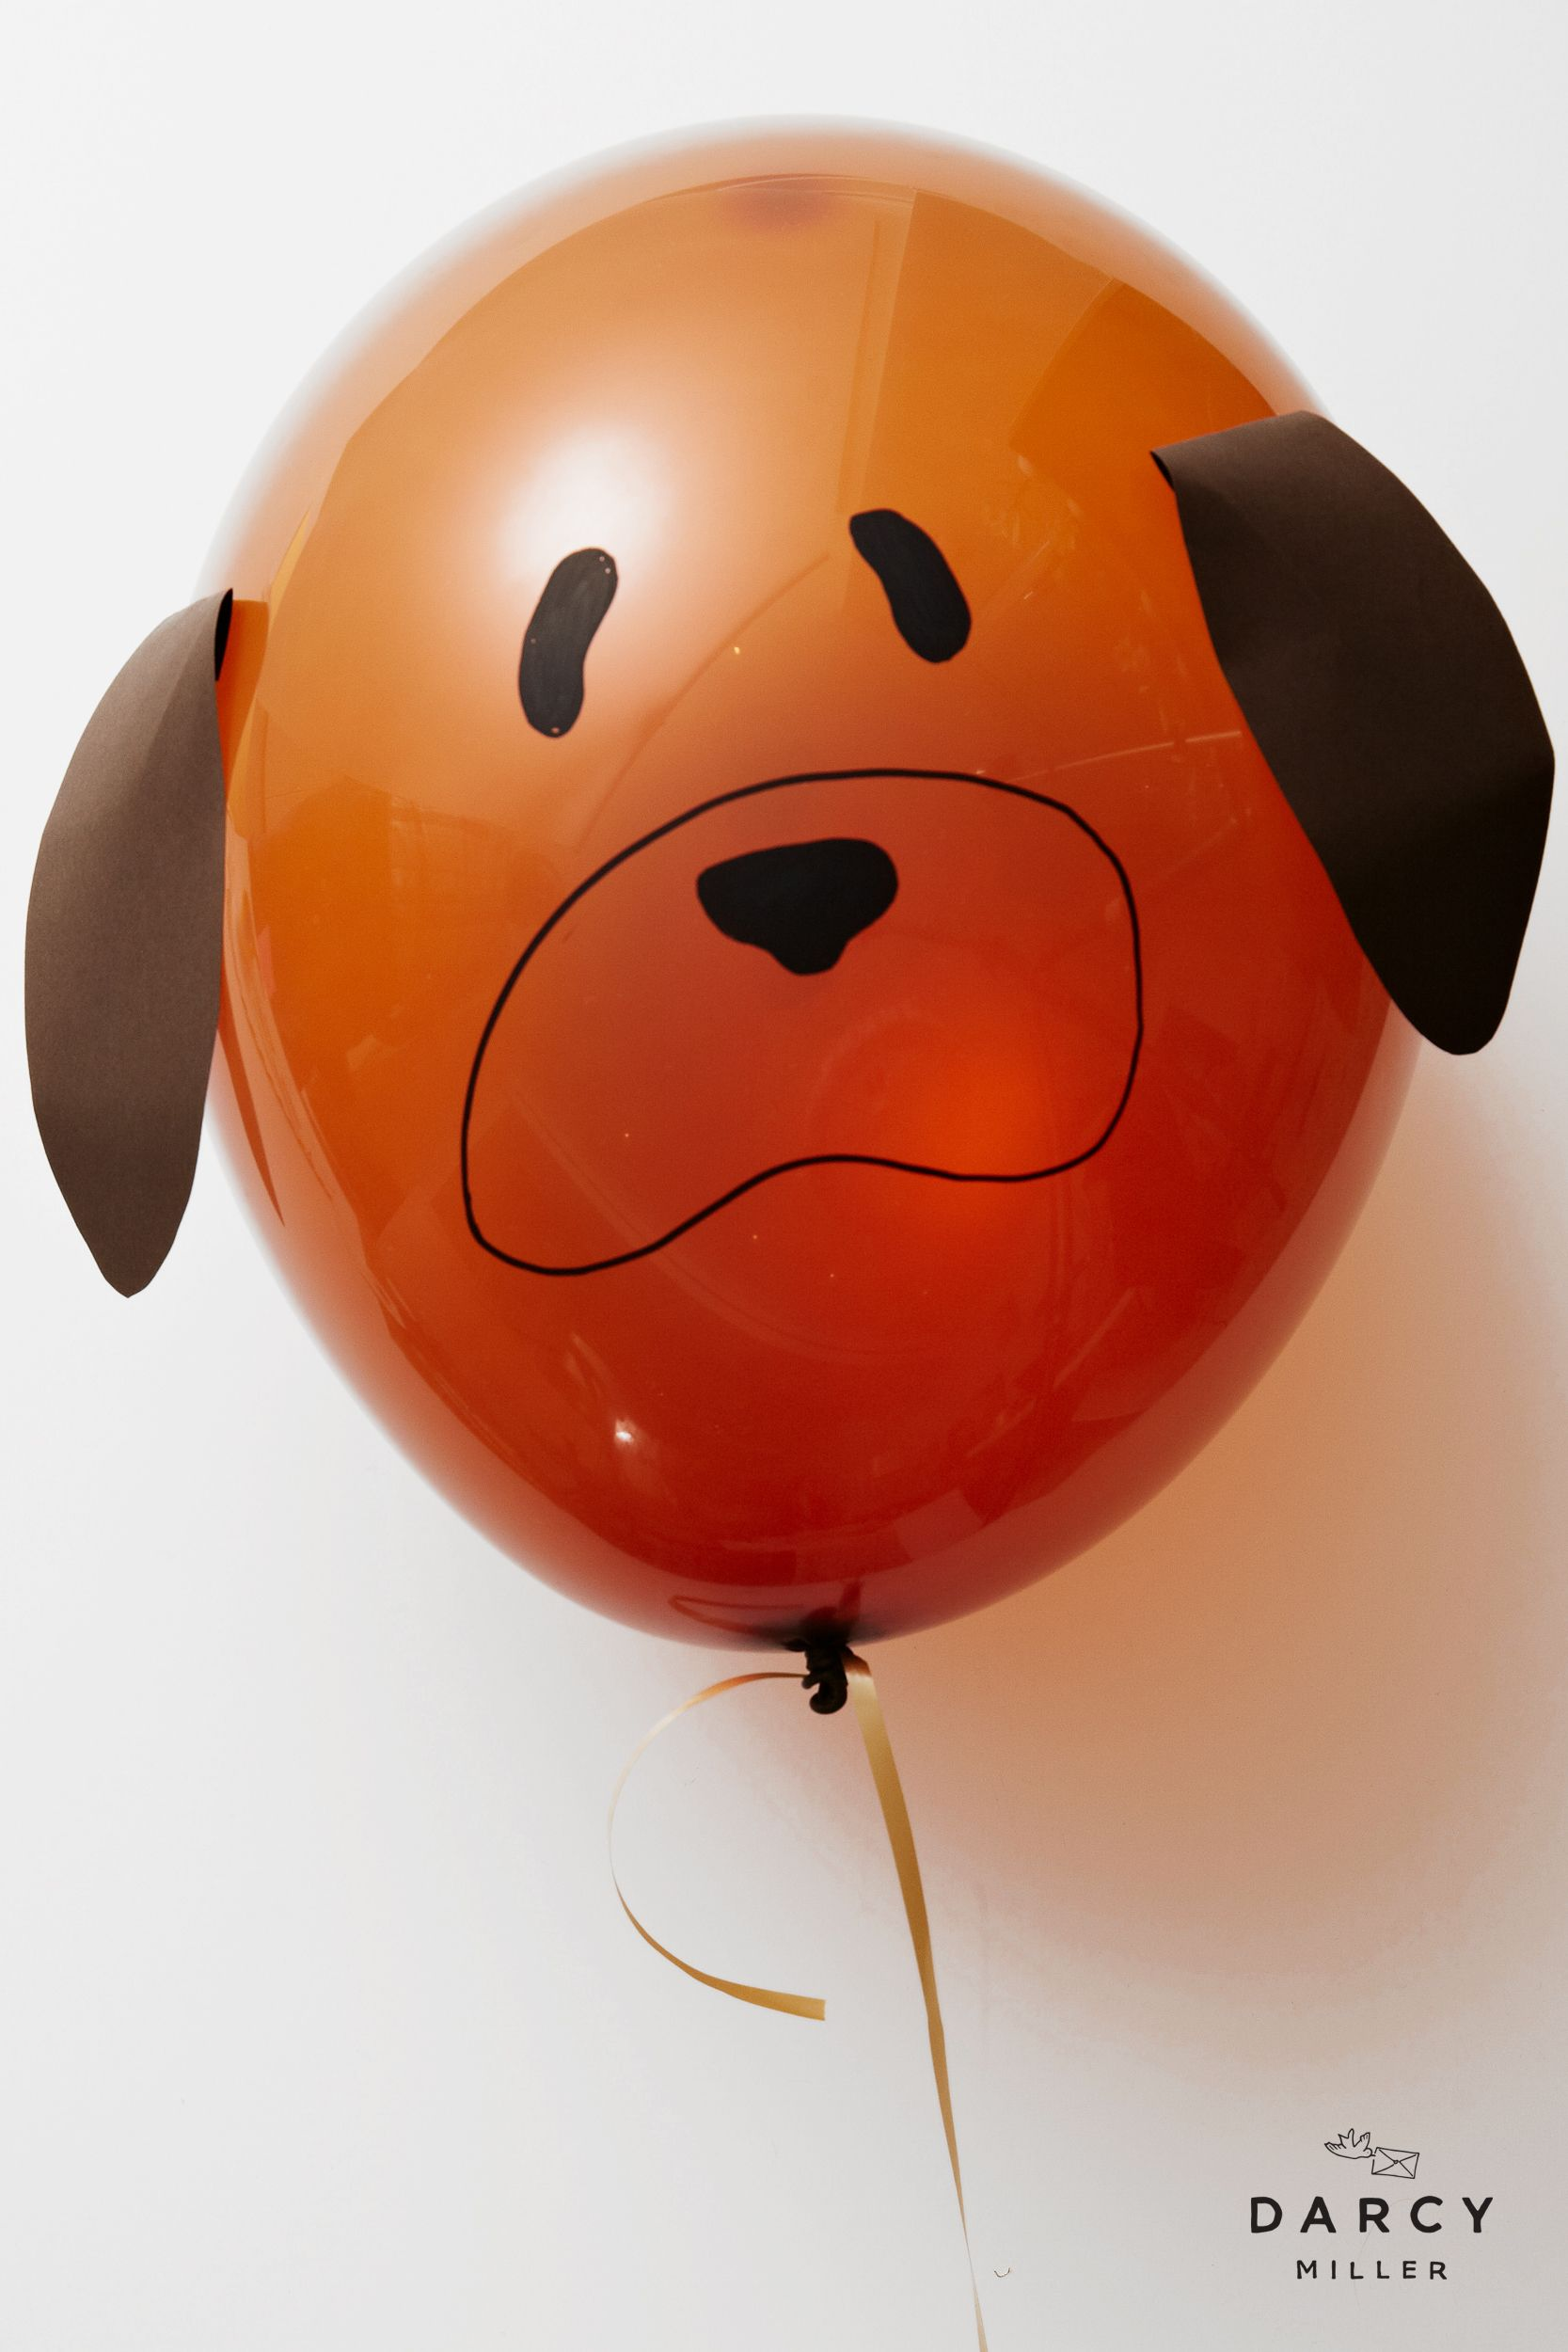 How Do I Get A Dogs Picture On A Ballon